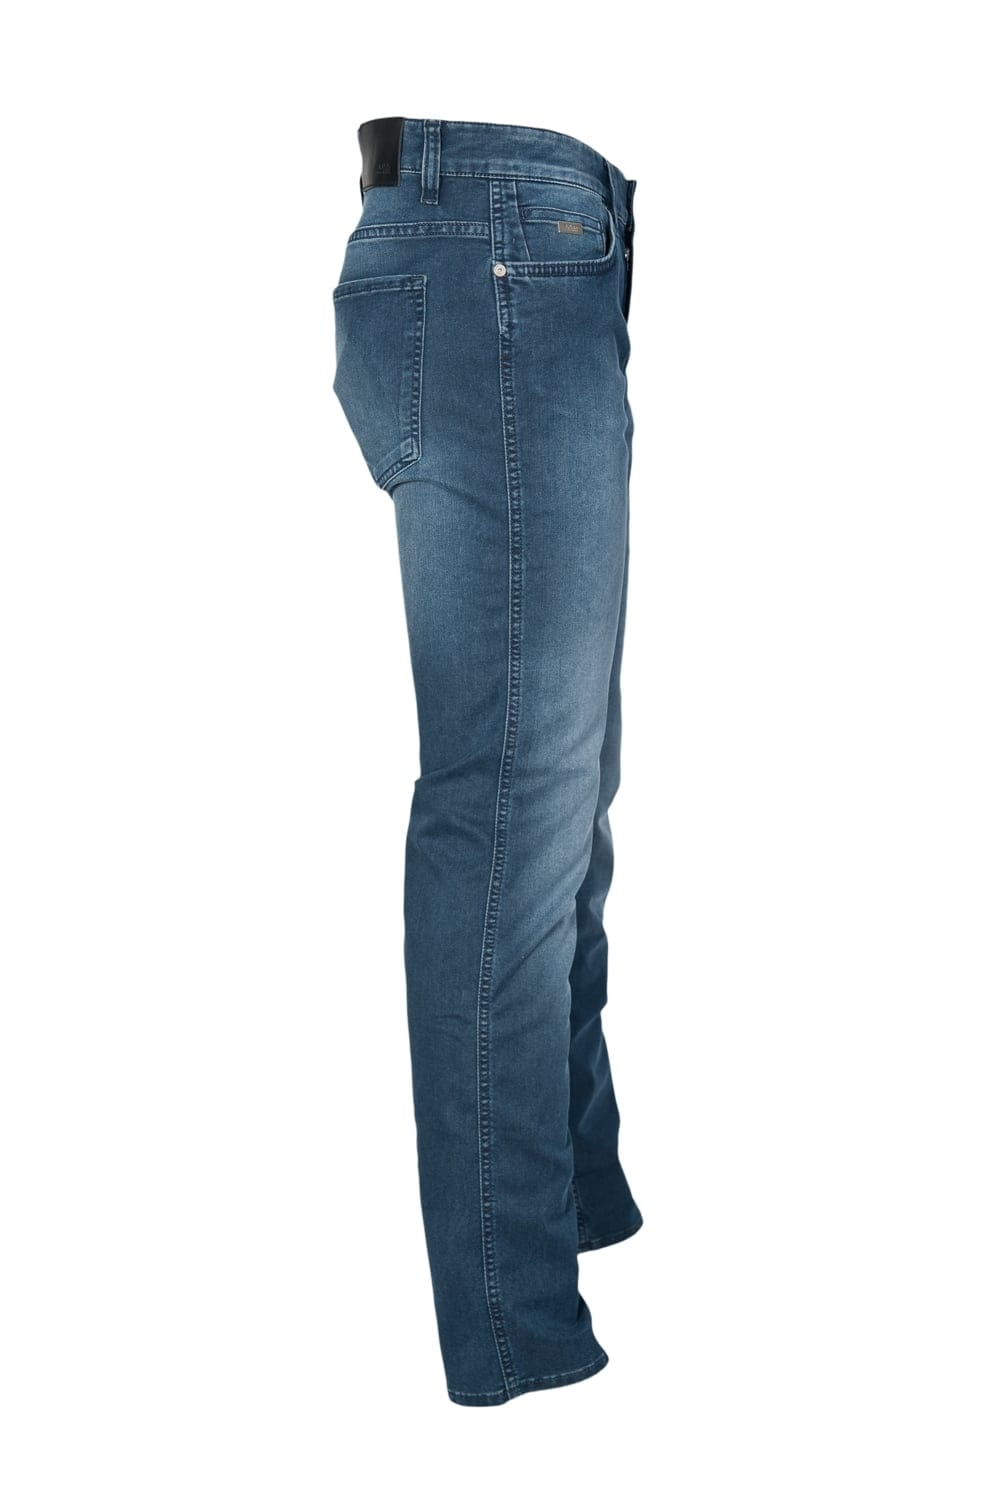 Shop the Latest Collection of Slim Straight Jeans for Men Online at wilmergolding6jn1.gq FREE SHIPPING AVAILABLE! Macy's Presents: The Edit- A curated mix of fashion and inspiration Check It Out. DKNY Men's Slim-Fit Straight-Leg Denim Jeans, Created for Macy's.